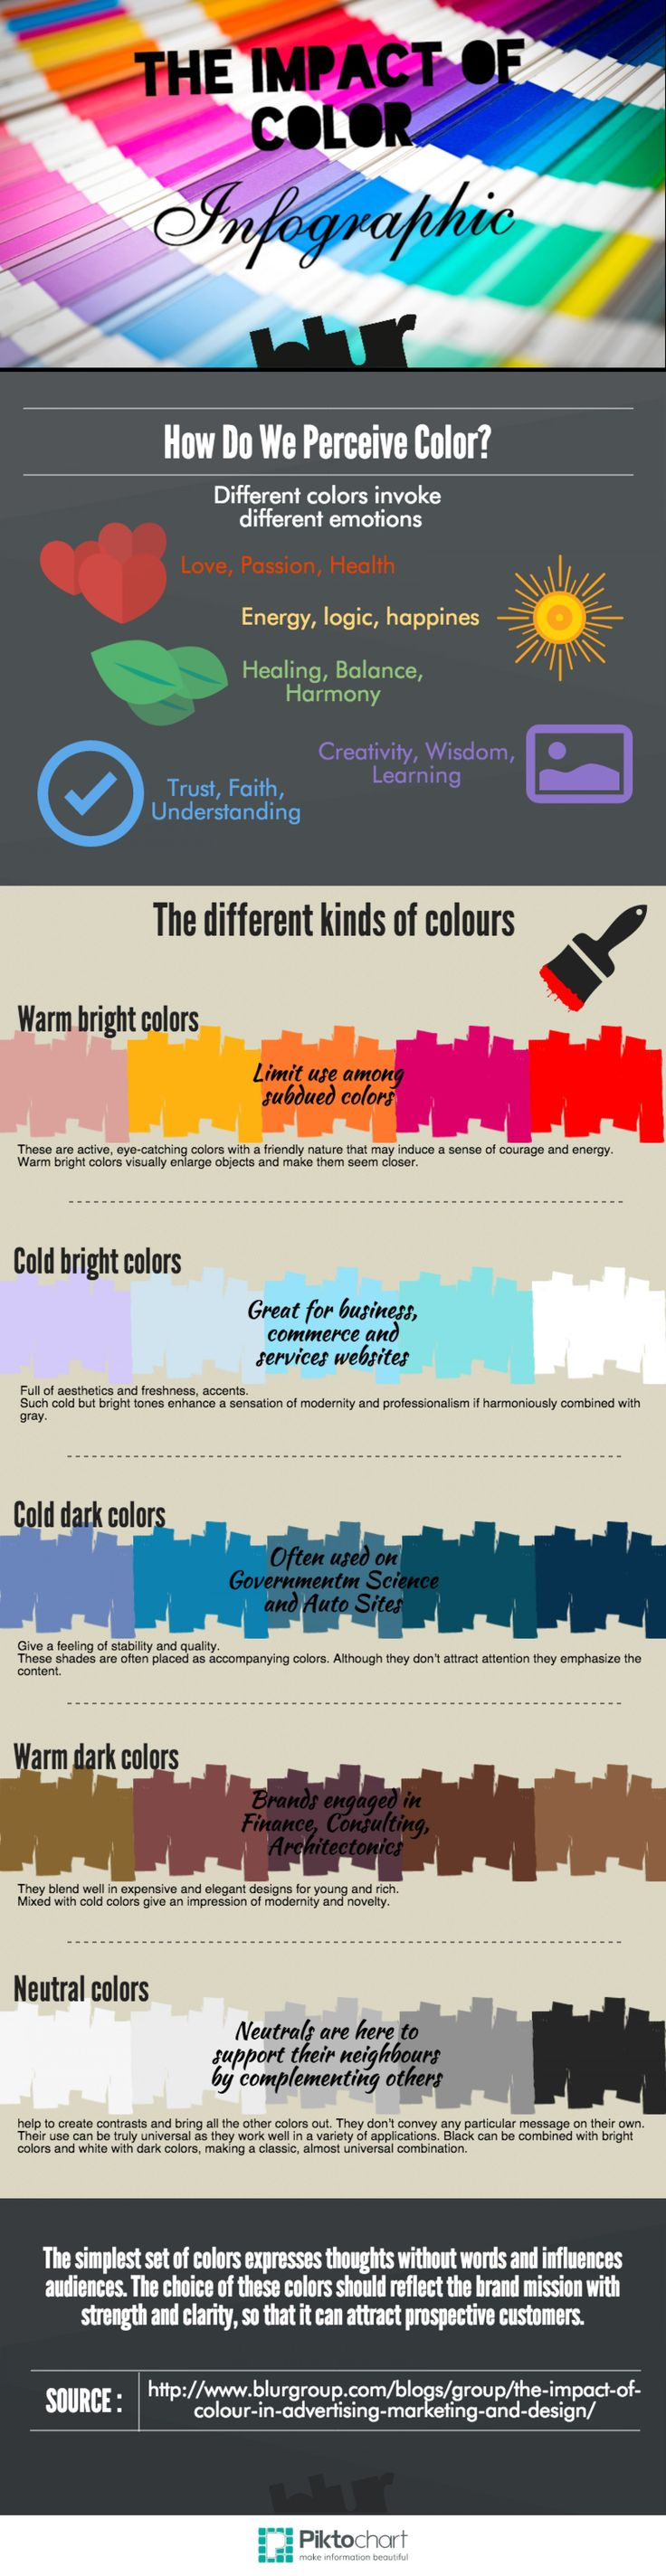 Color on online - Best 25 Psychology Of Colour Ideas On Pinterest Colors And Emotions Psychology Of Color And Psychological Effects Of Color